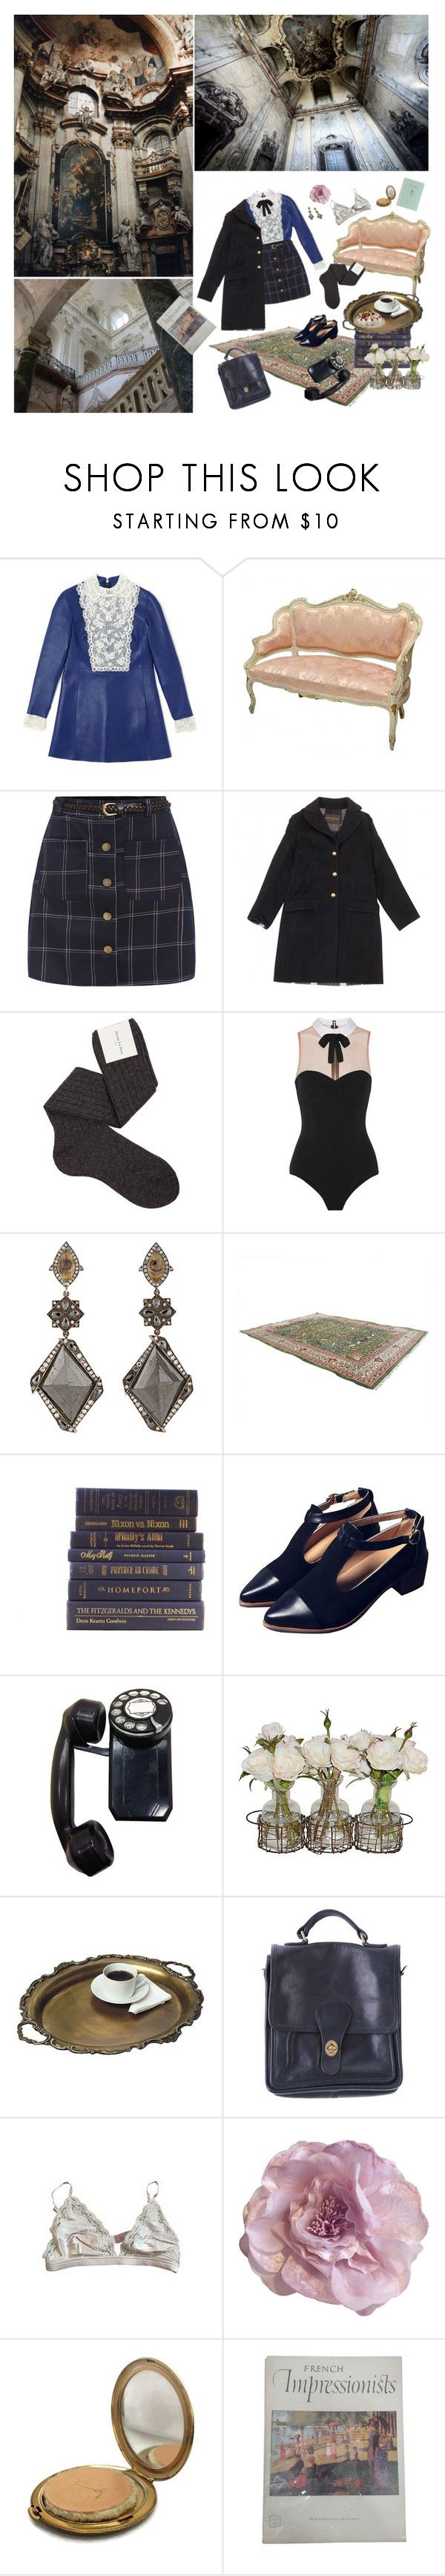 """""""Diana"""" by psicopata ❤ liked on Polyvore featuring Louis Vuitton, Maria La Rosa, Fleur du Mal, Sevan Biçakçi, American Eagle Outfitters, American Apparel, STELLA McCARTNEY, Cynthia Rowley and Coty"""